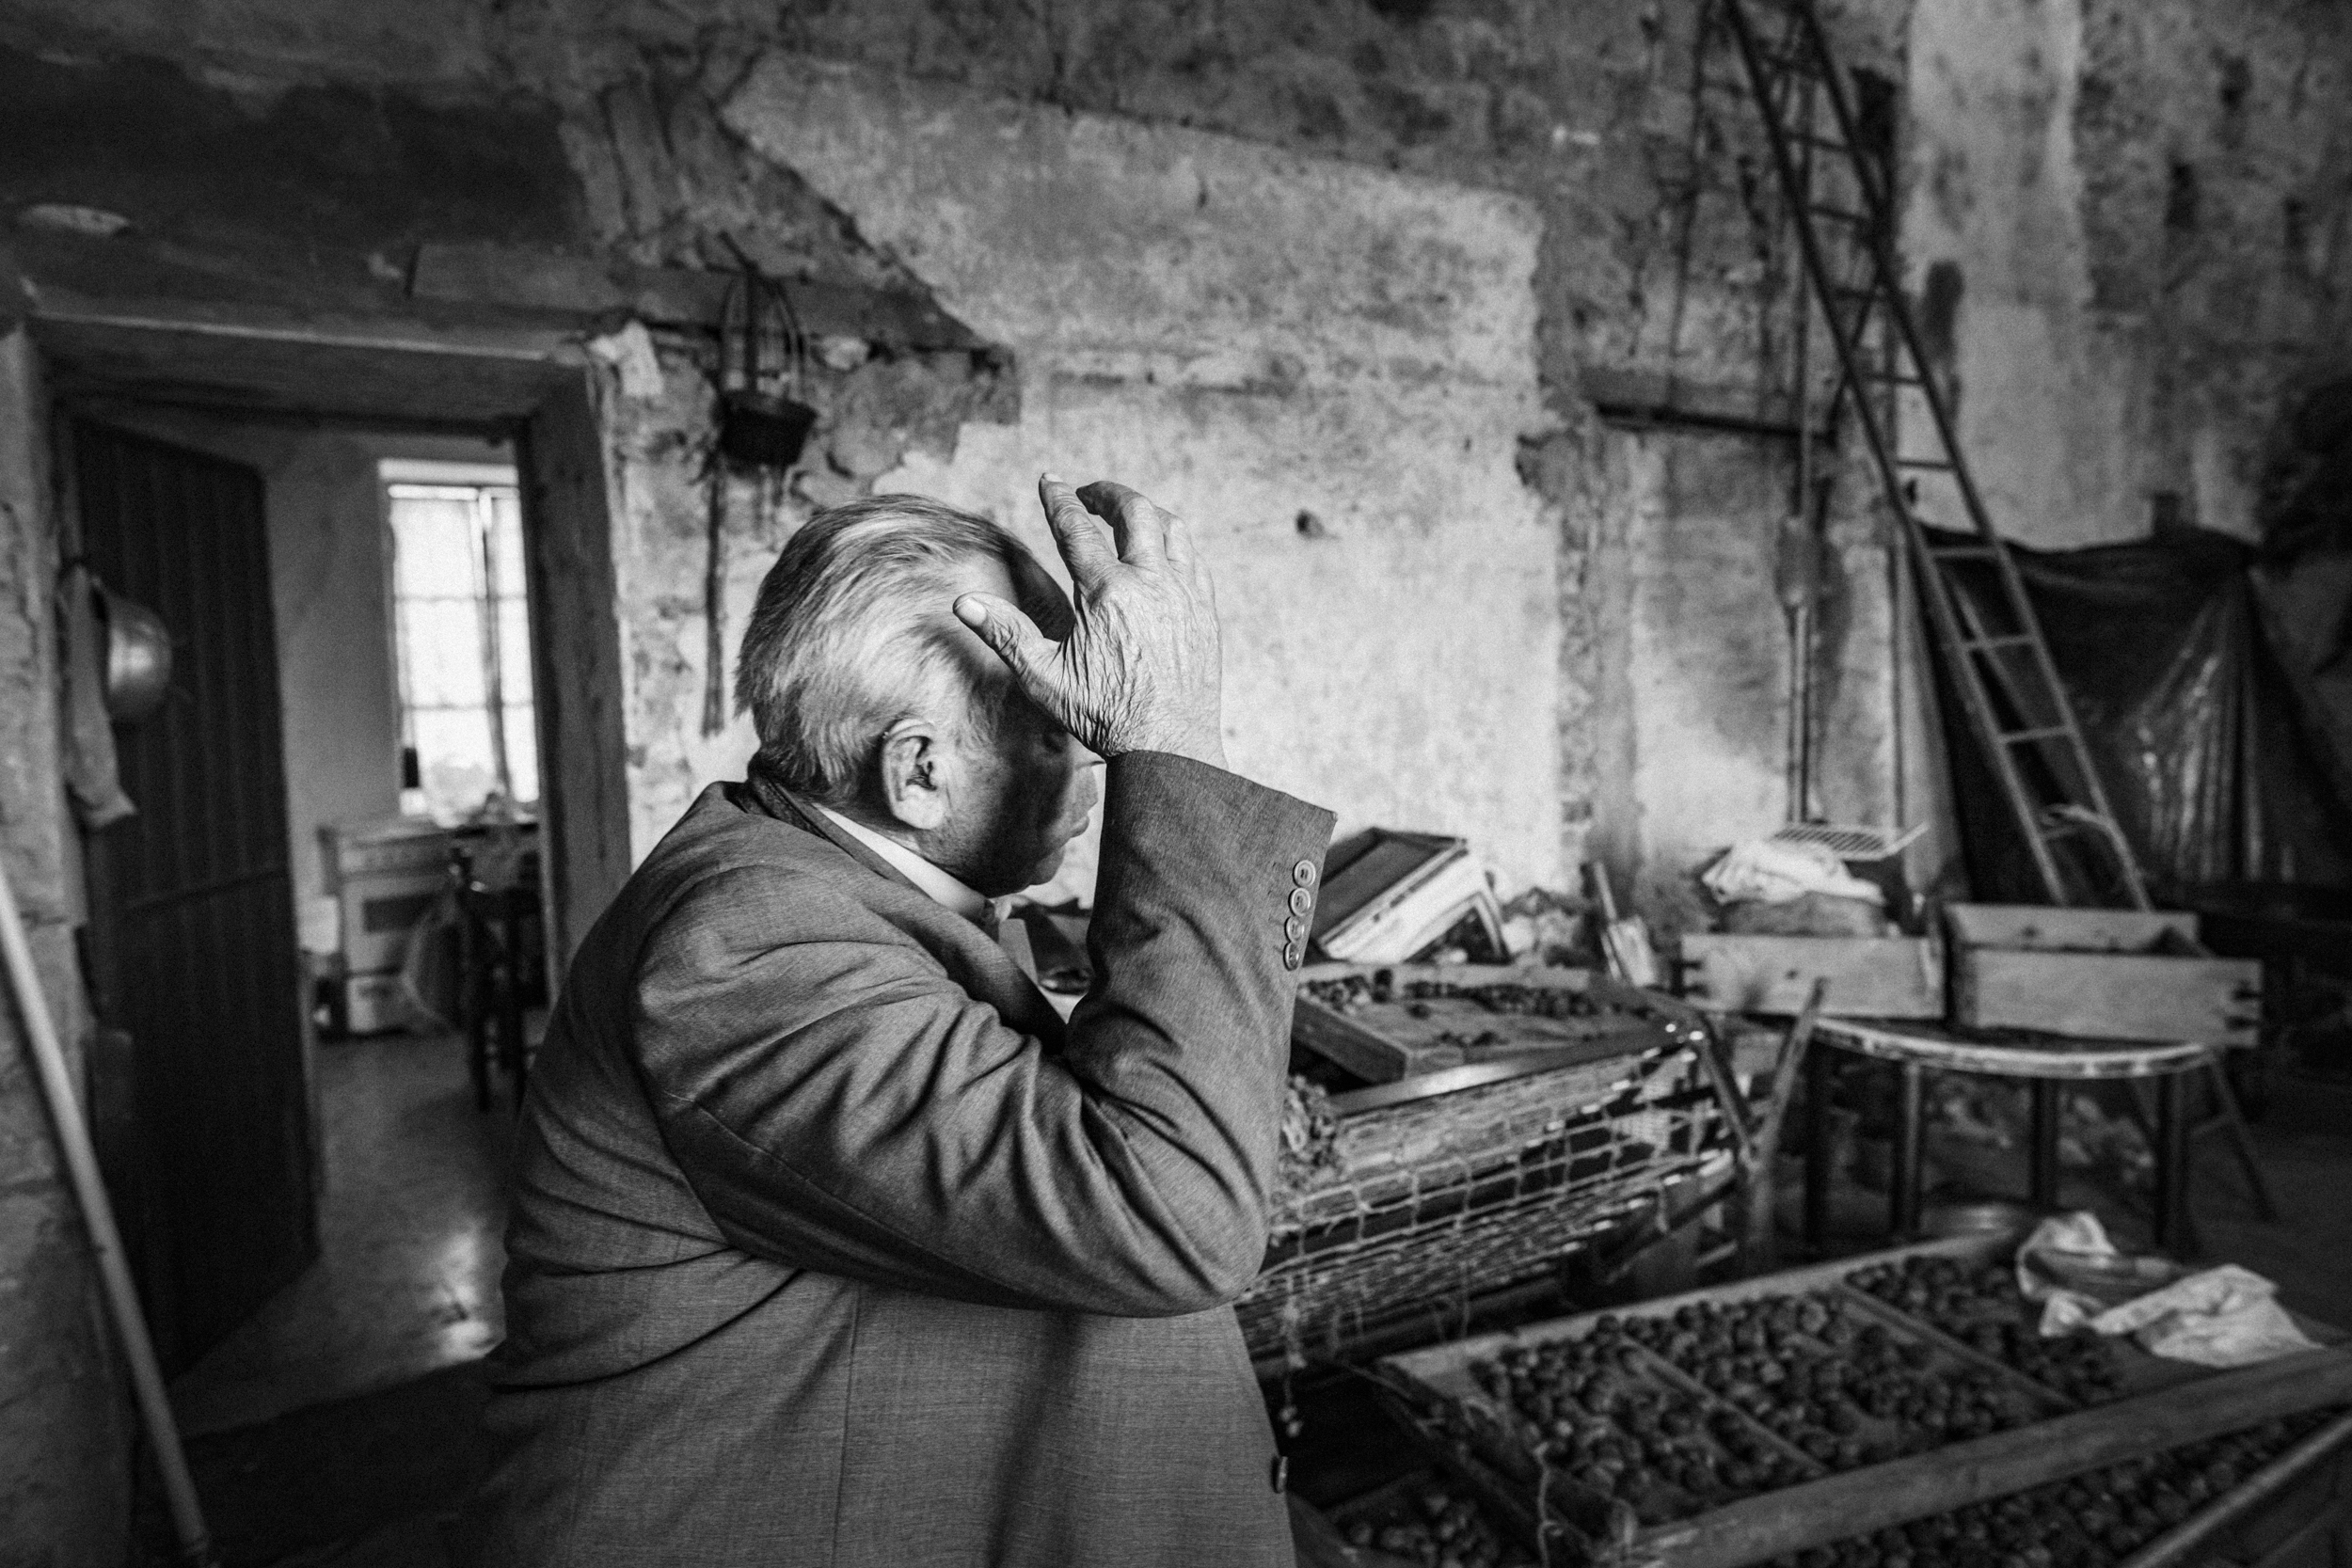 Sant'Angelo del Pesco (IS), Italy - November 2015. Sciullo Nicola tells stories a bout the splendour of his youth in what remains of his agricultural estate.